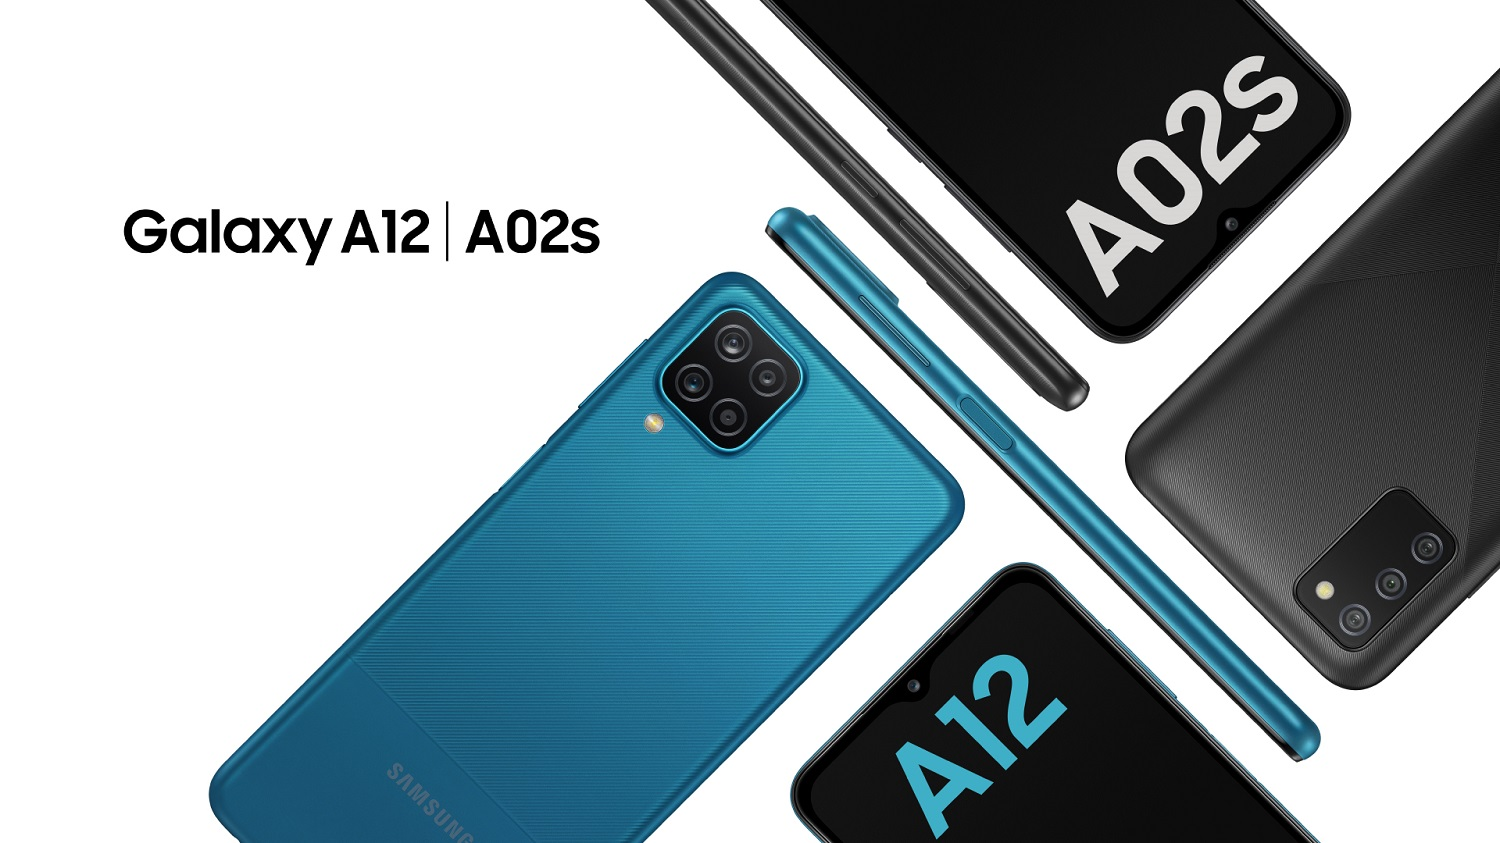 Samsung Introduces the New Galaxy A12 and Galaxy A02s